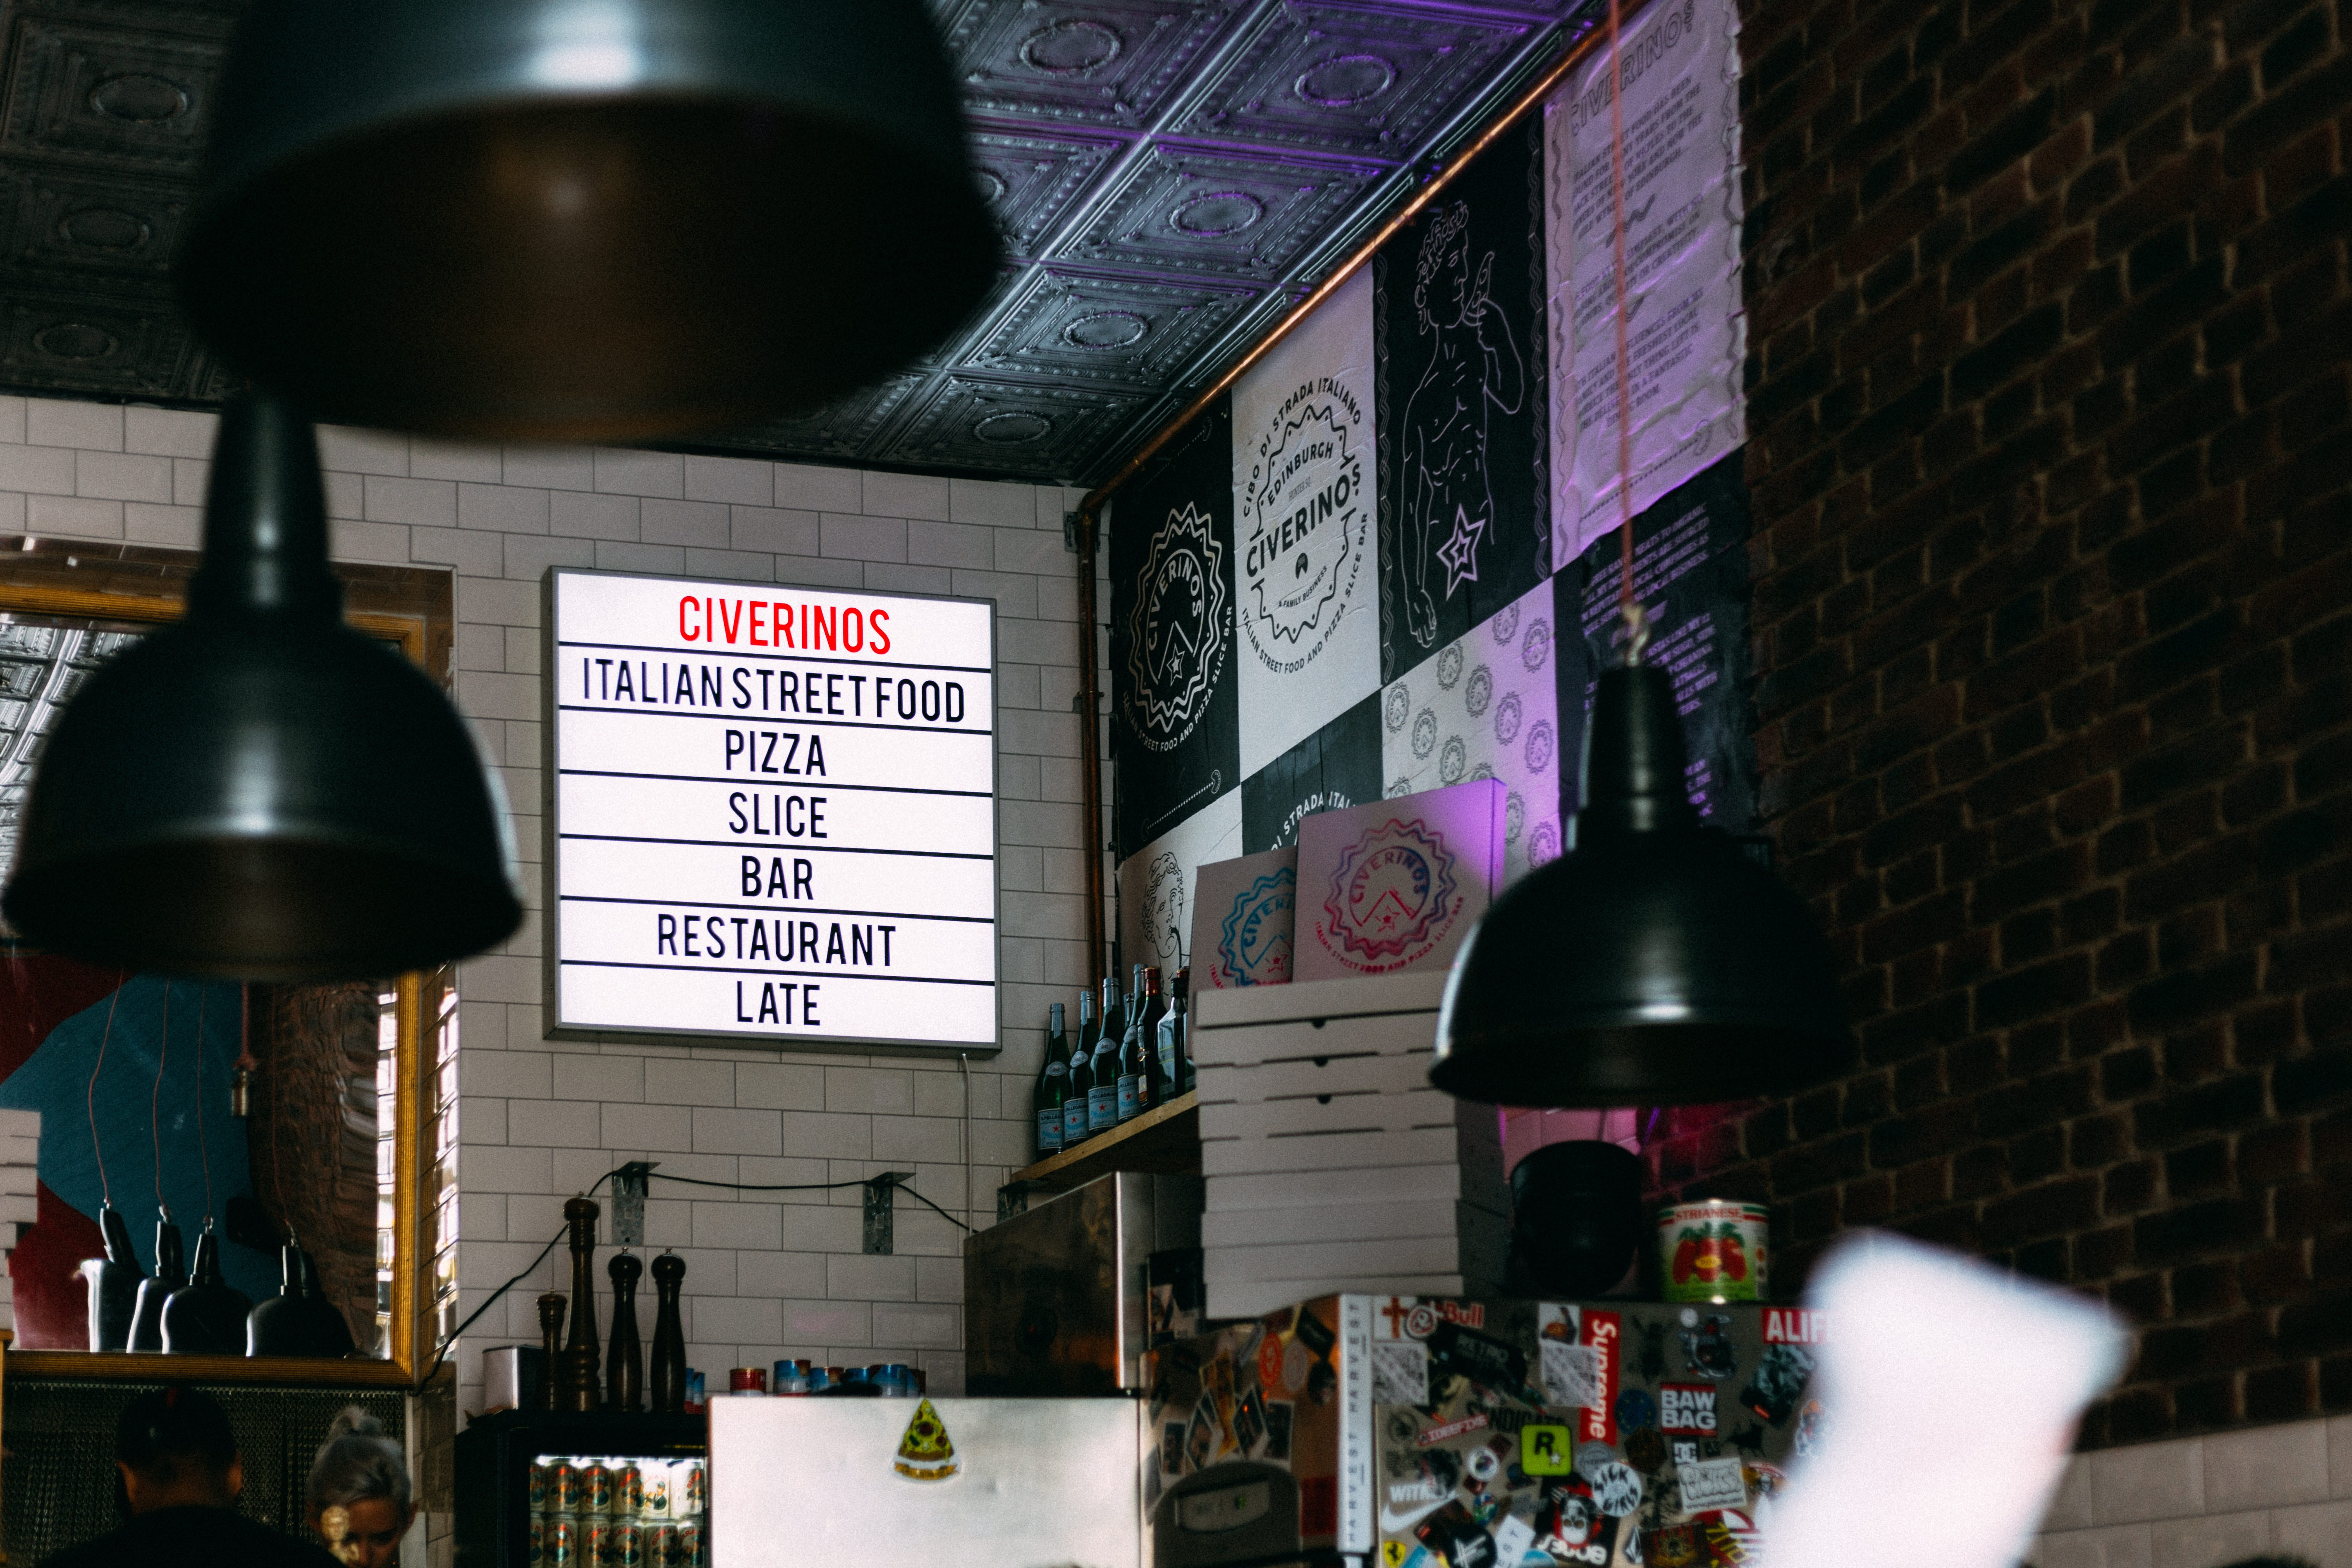 The walls of a bistro with signs, posters, and refrigerators